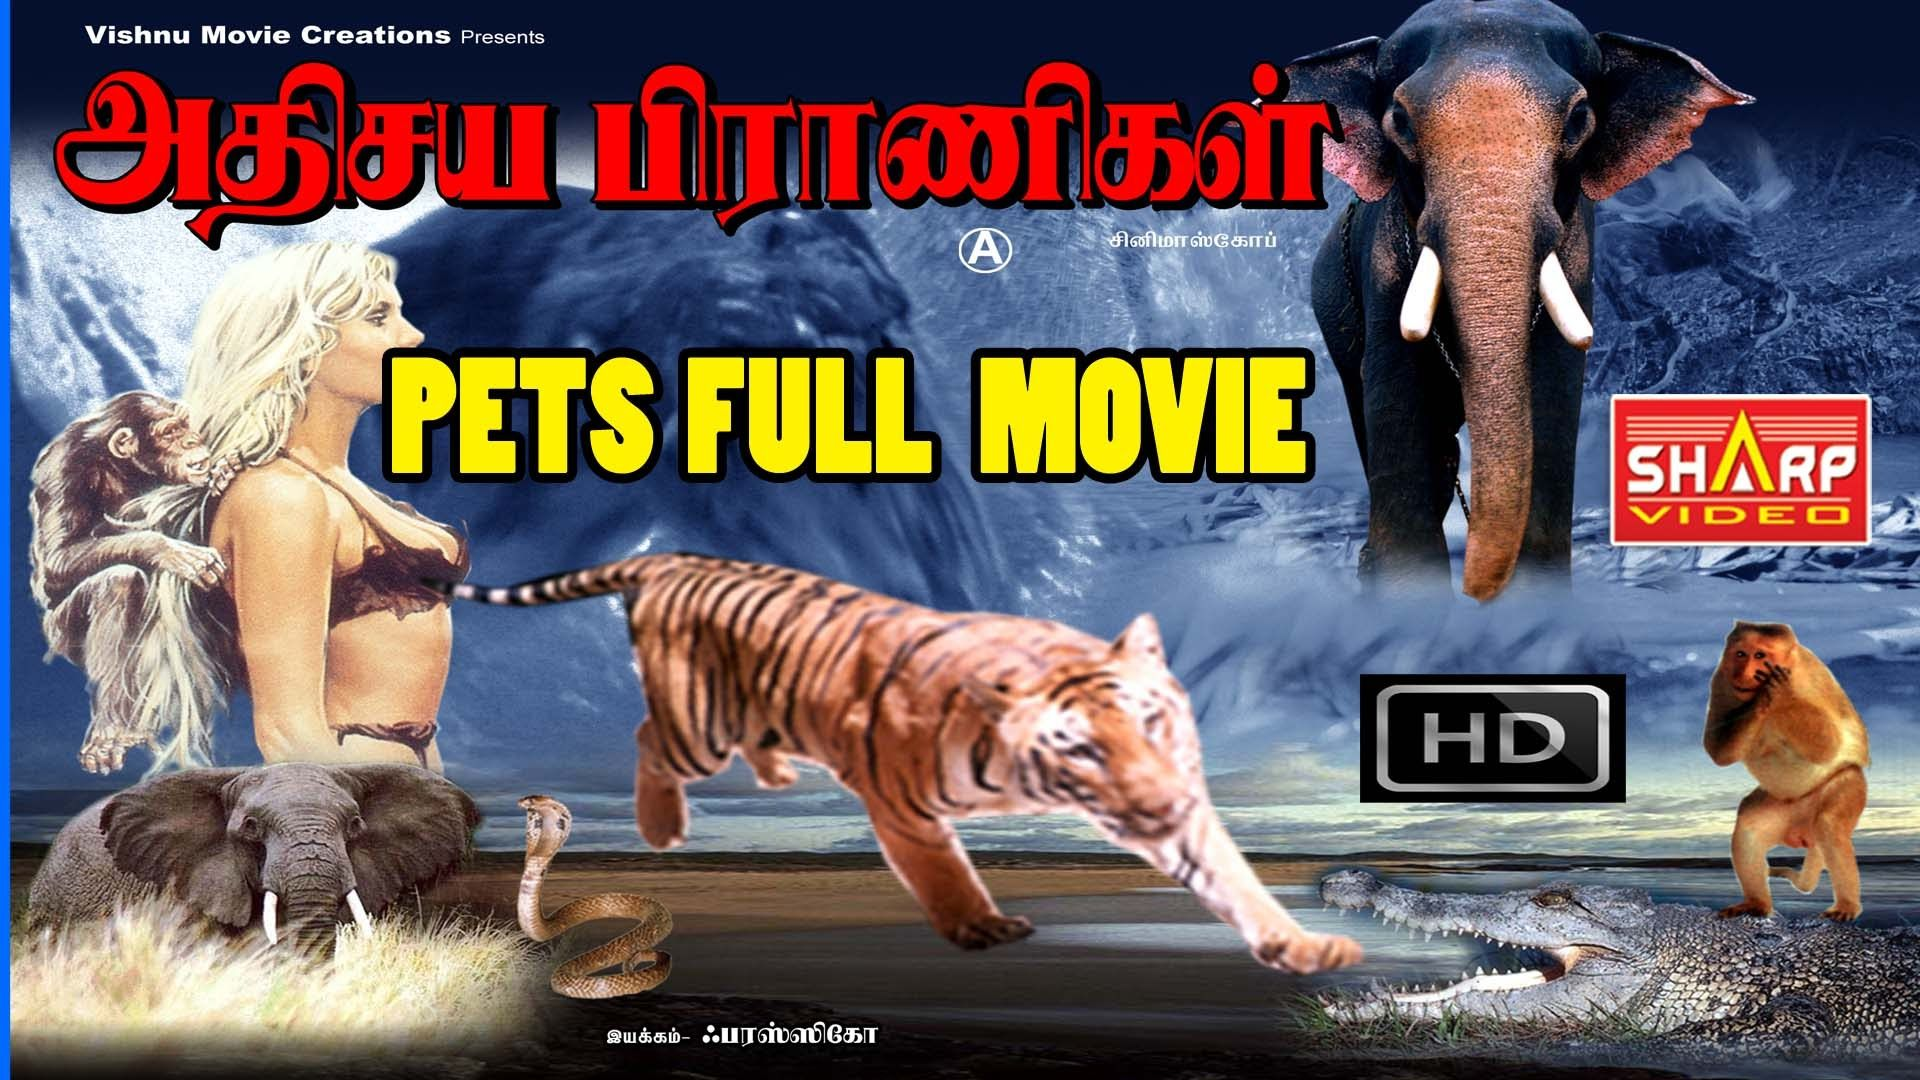 ACTION HD TAMIL DUBBED MOVIE HOLLYWOOD TAMIL MOVIE pets